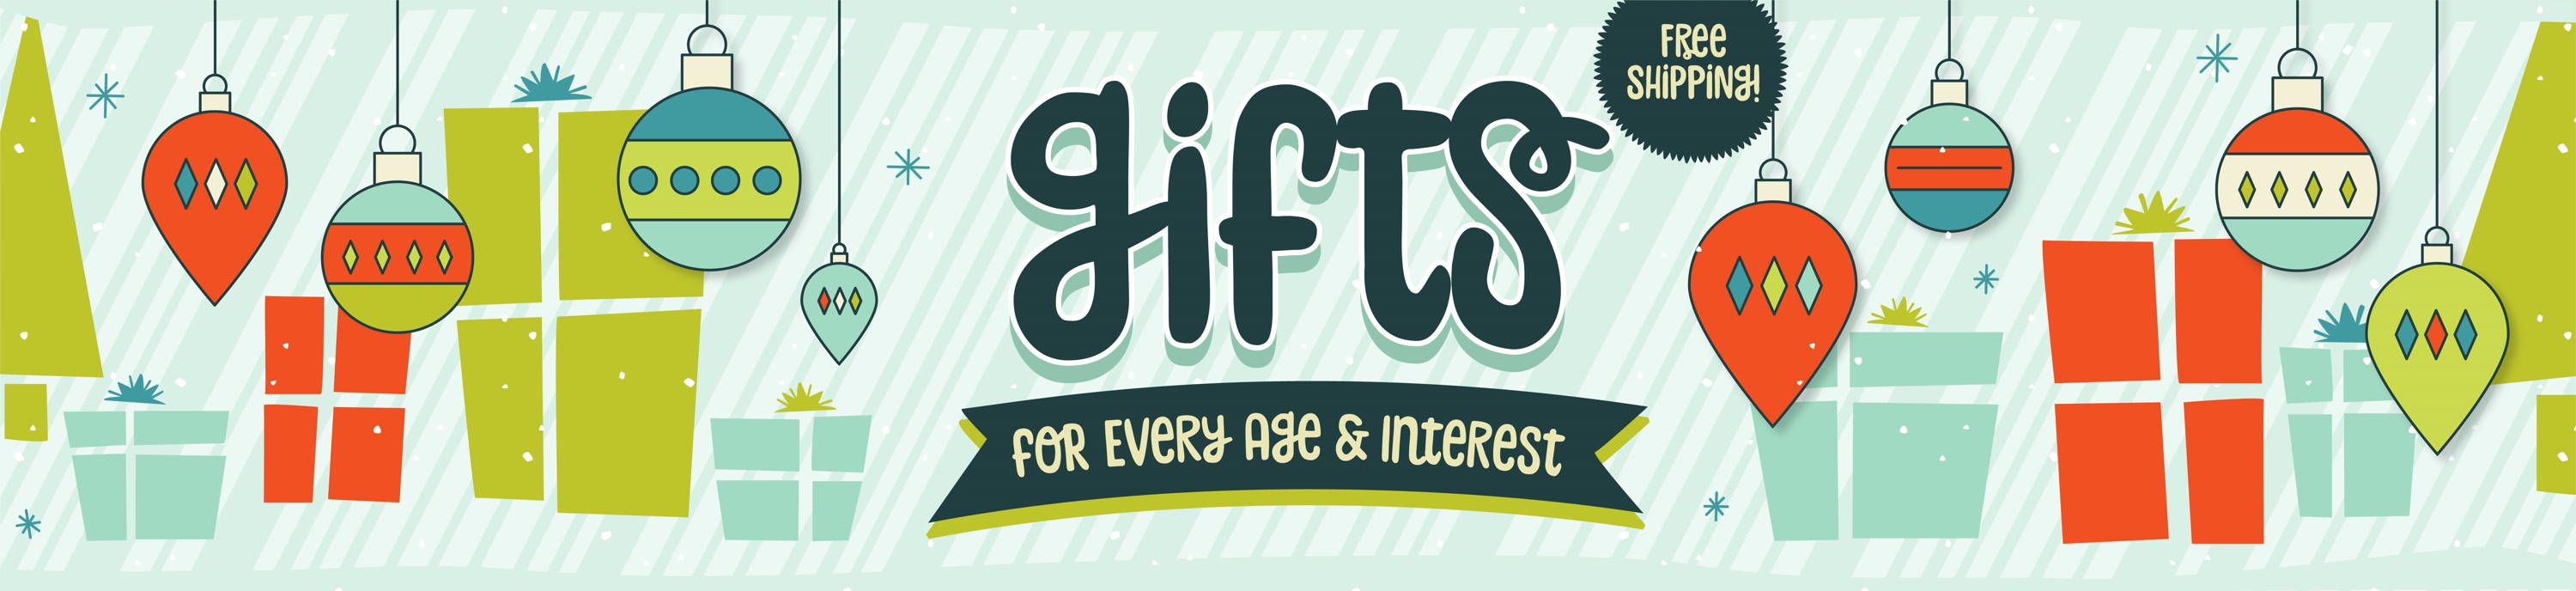 Gifts for every age & interest